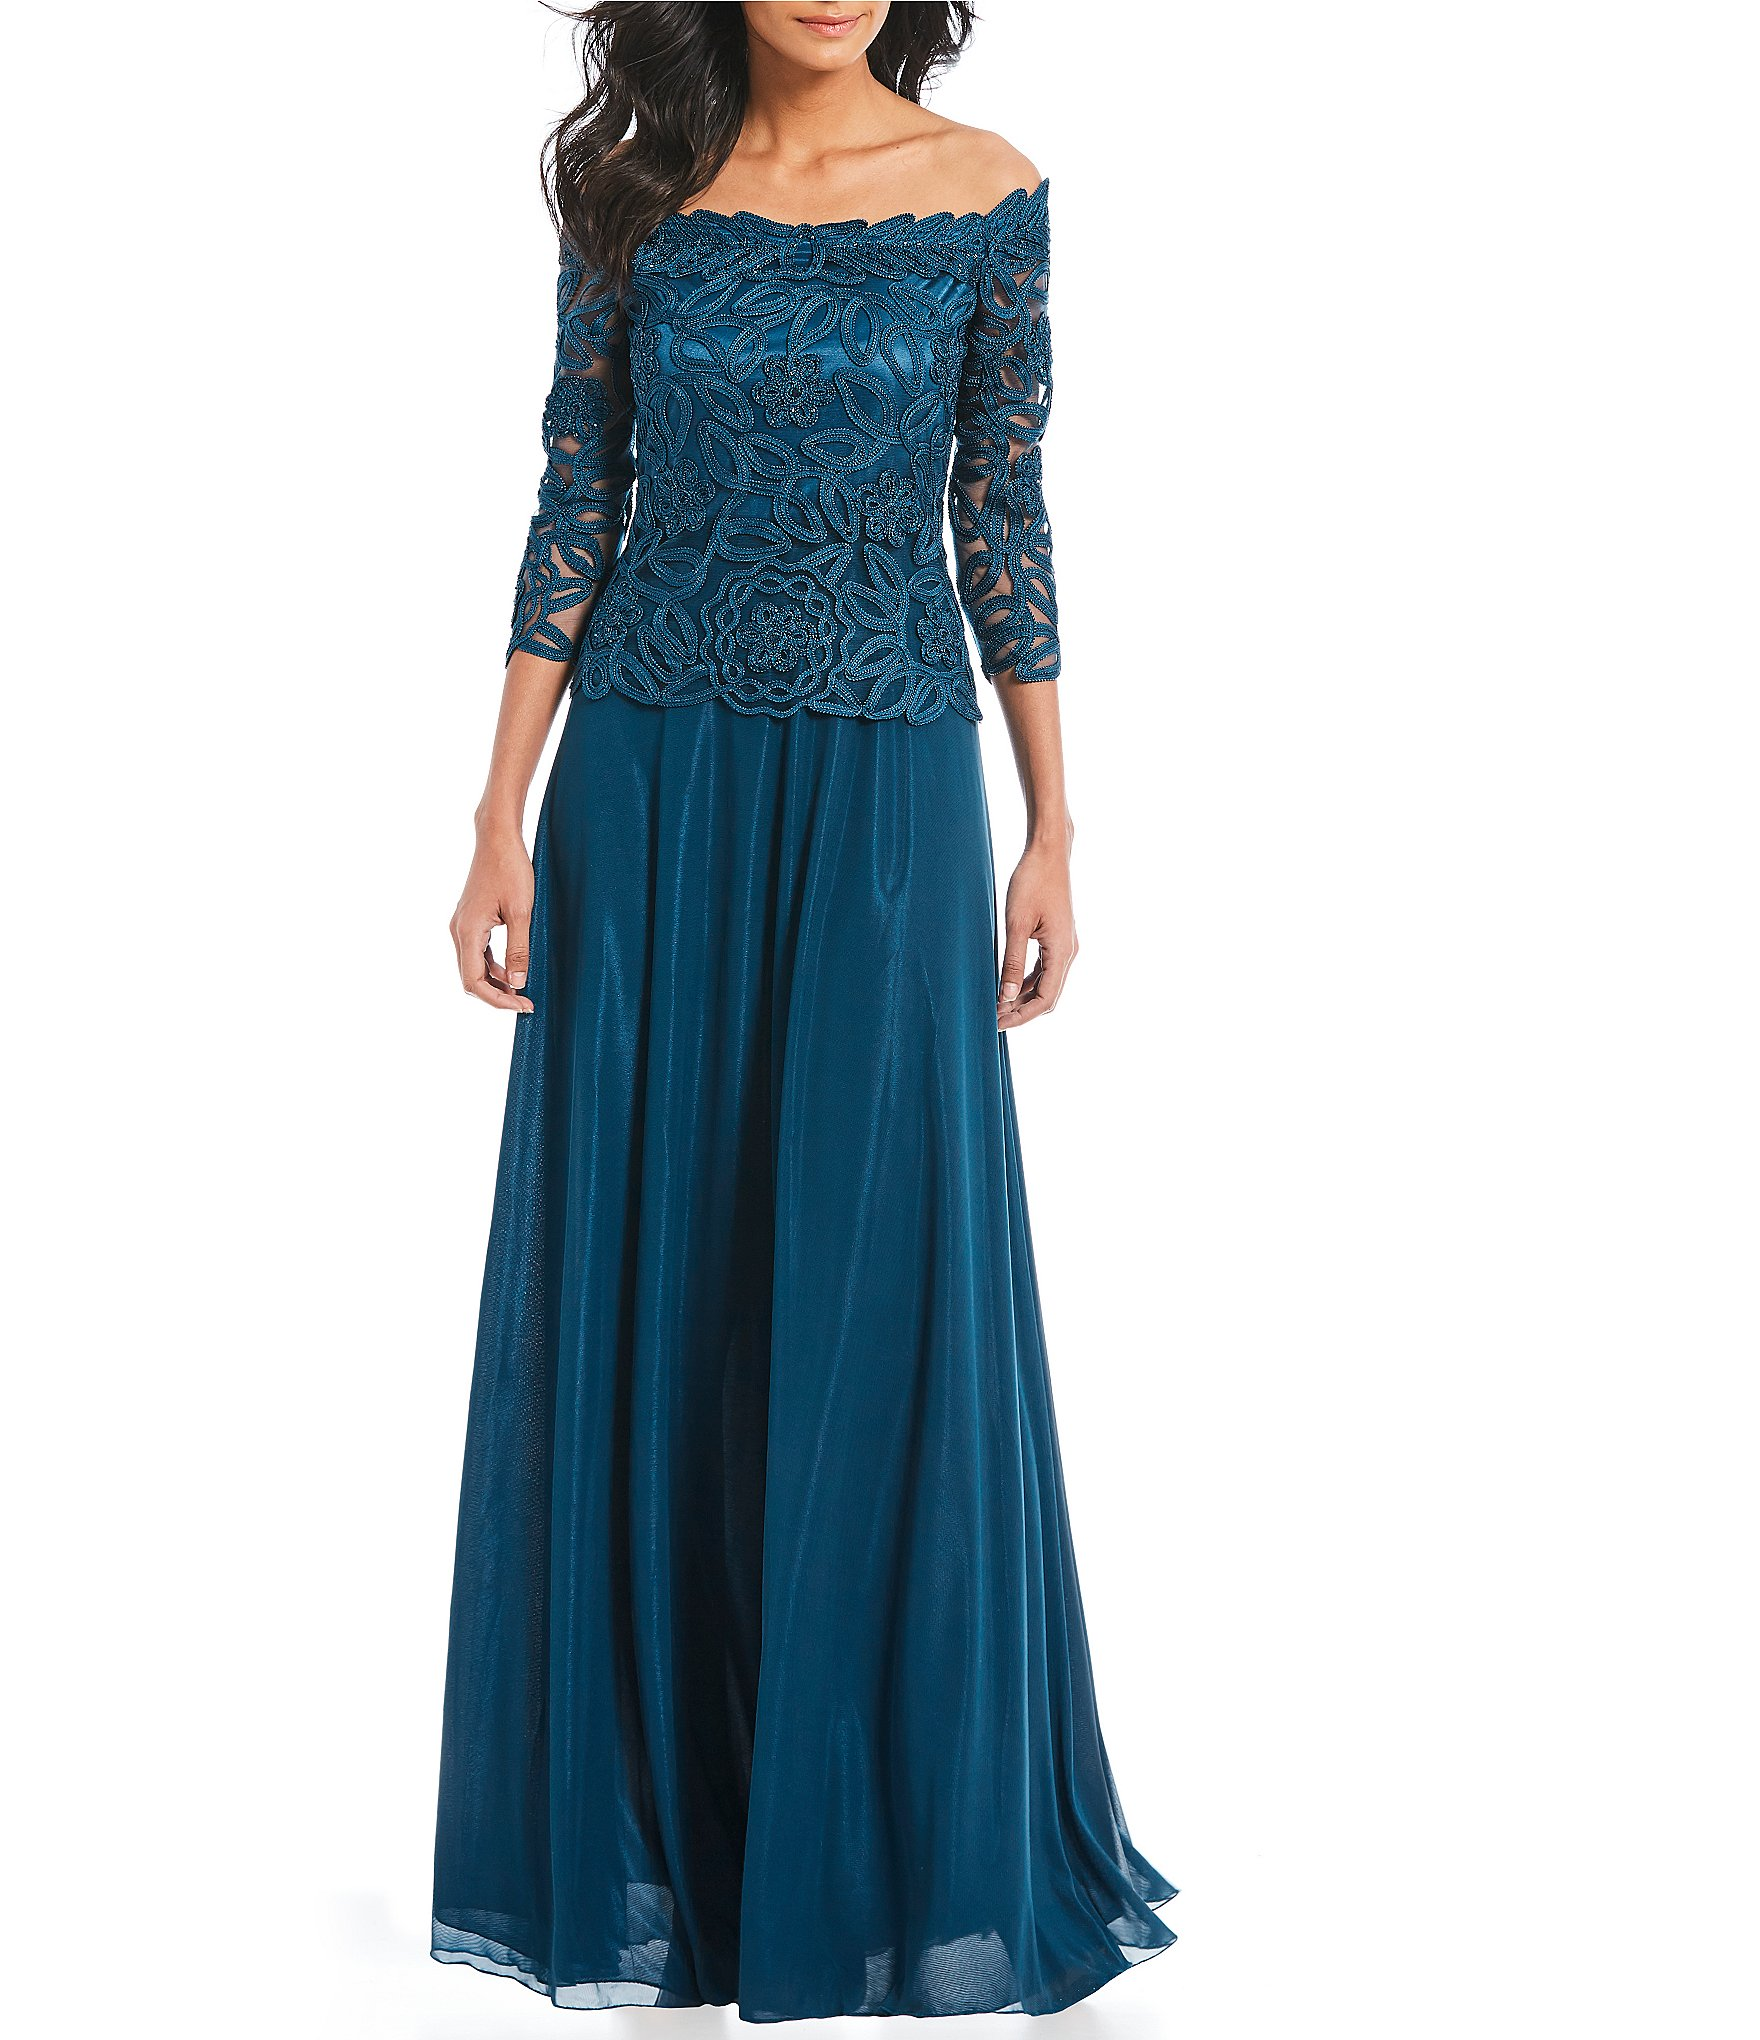 959da4d8c2c Mother of the Bride 3 4-Sleeve Long Dresses